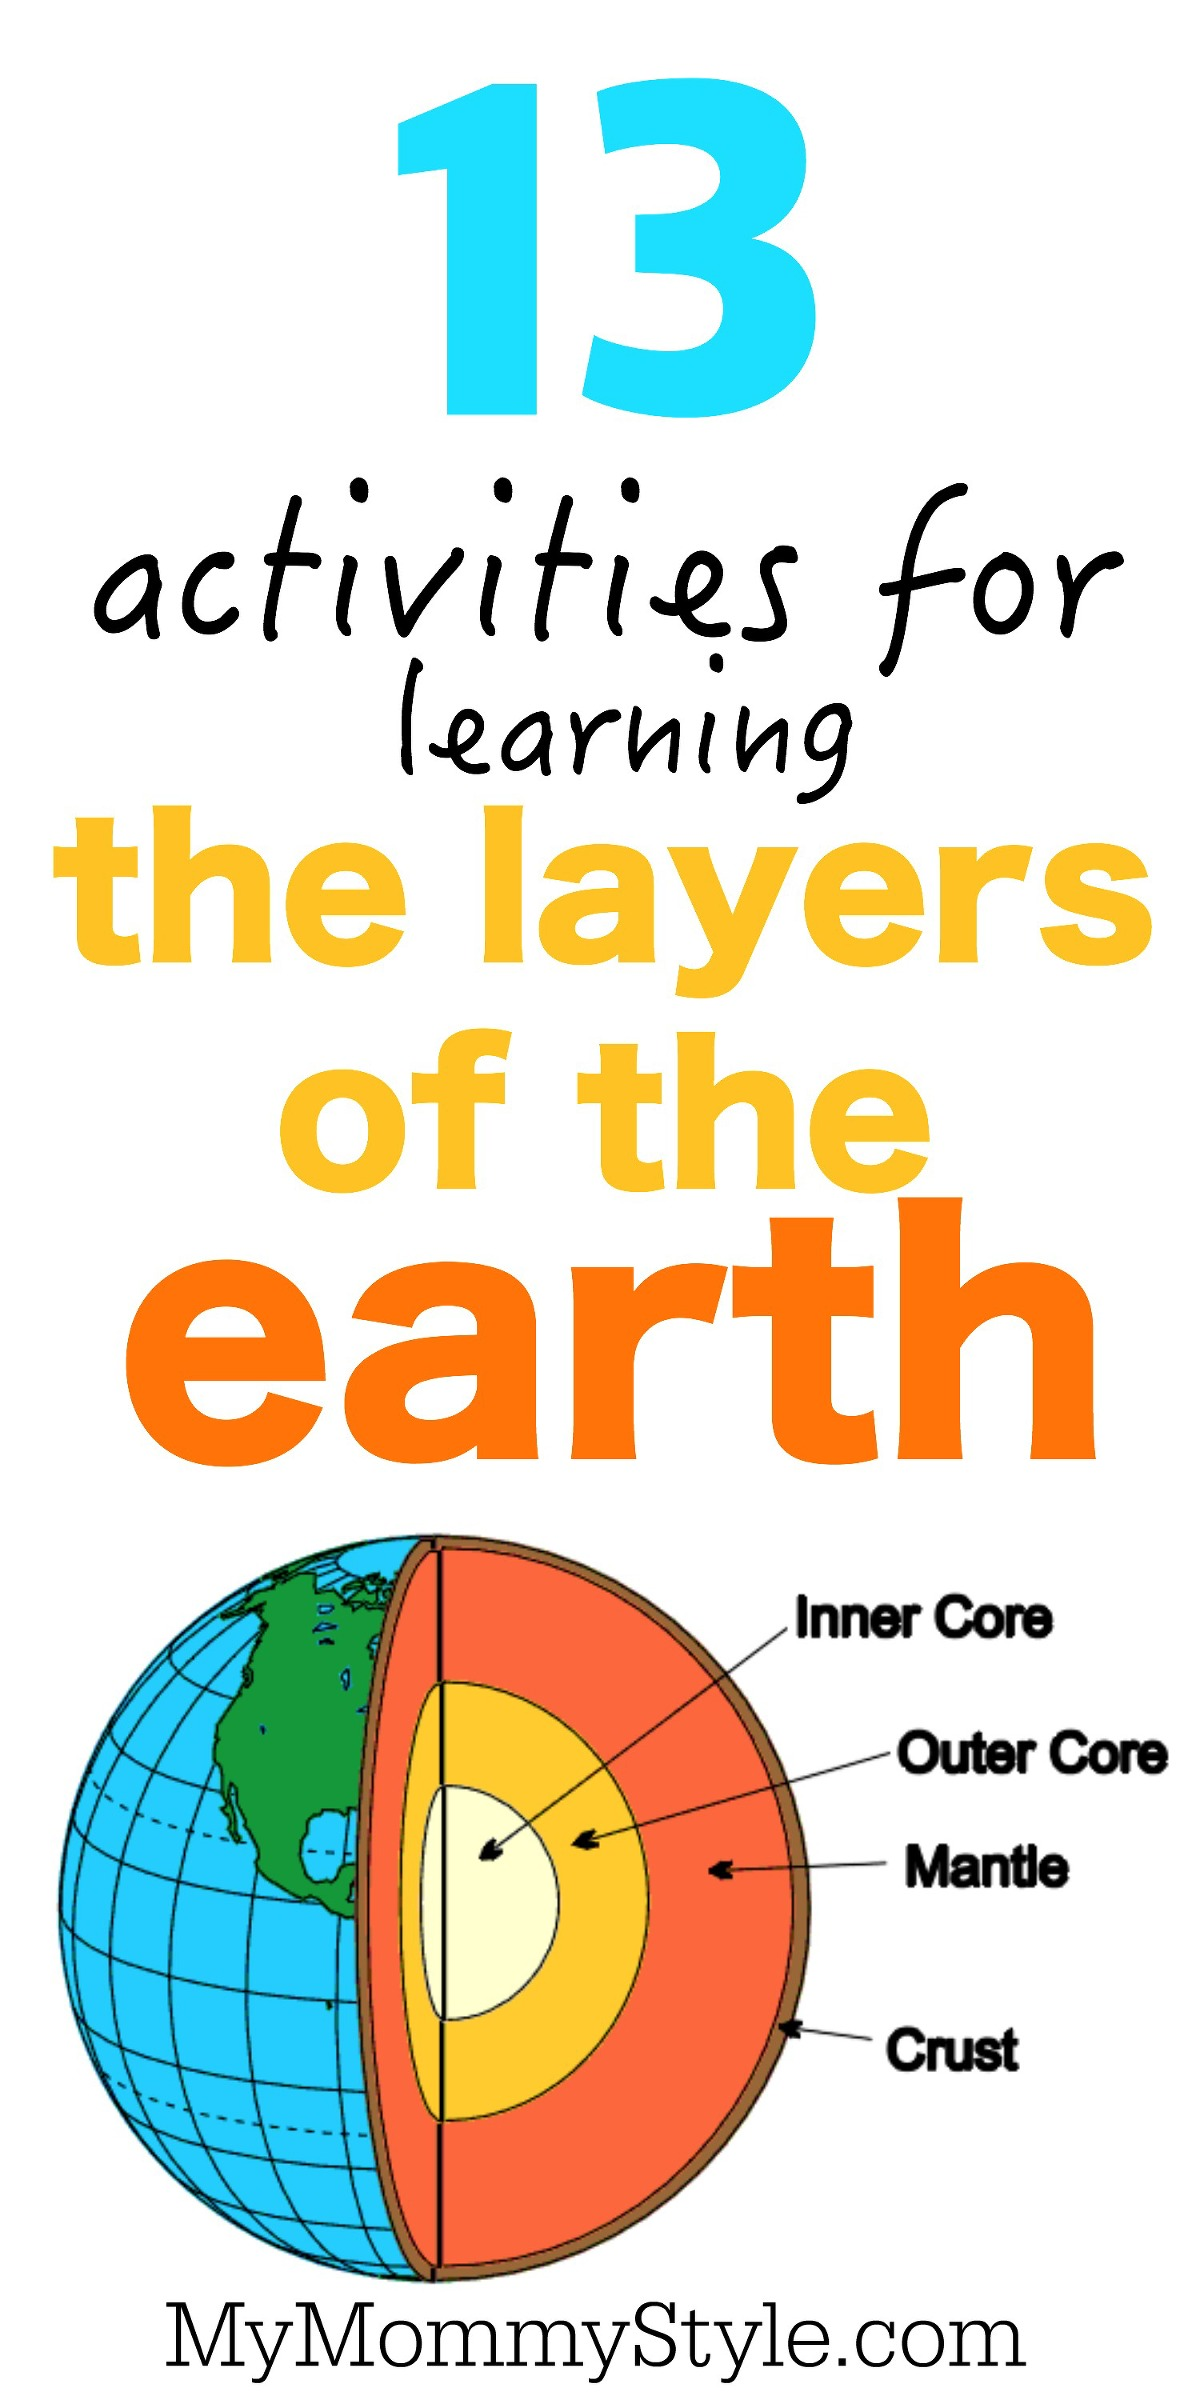 earth layers diagram worksheet 1967 mustang ignition switch wiring 13 of the activities my mommy style